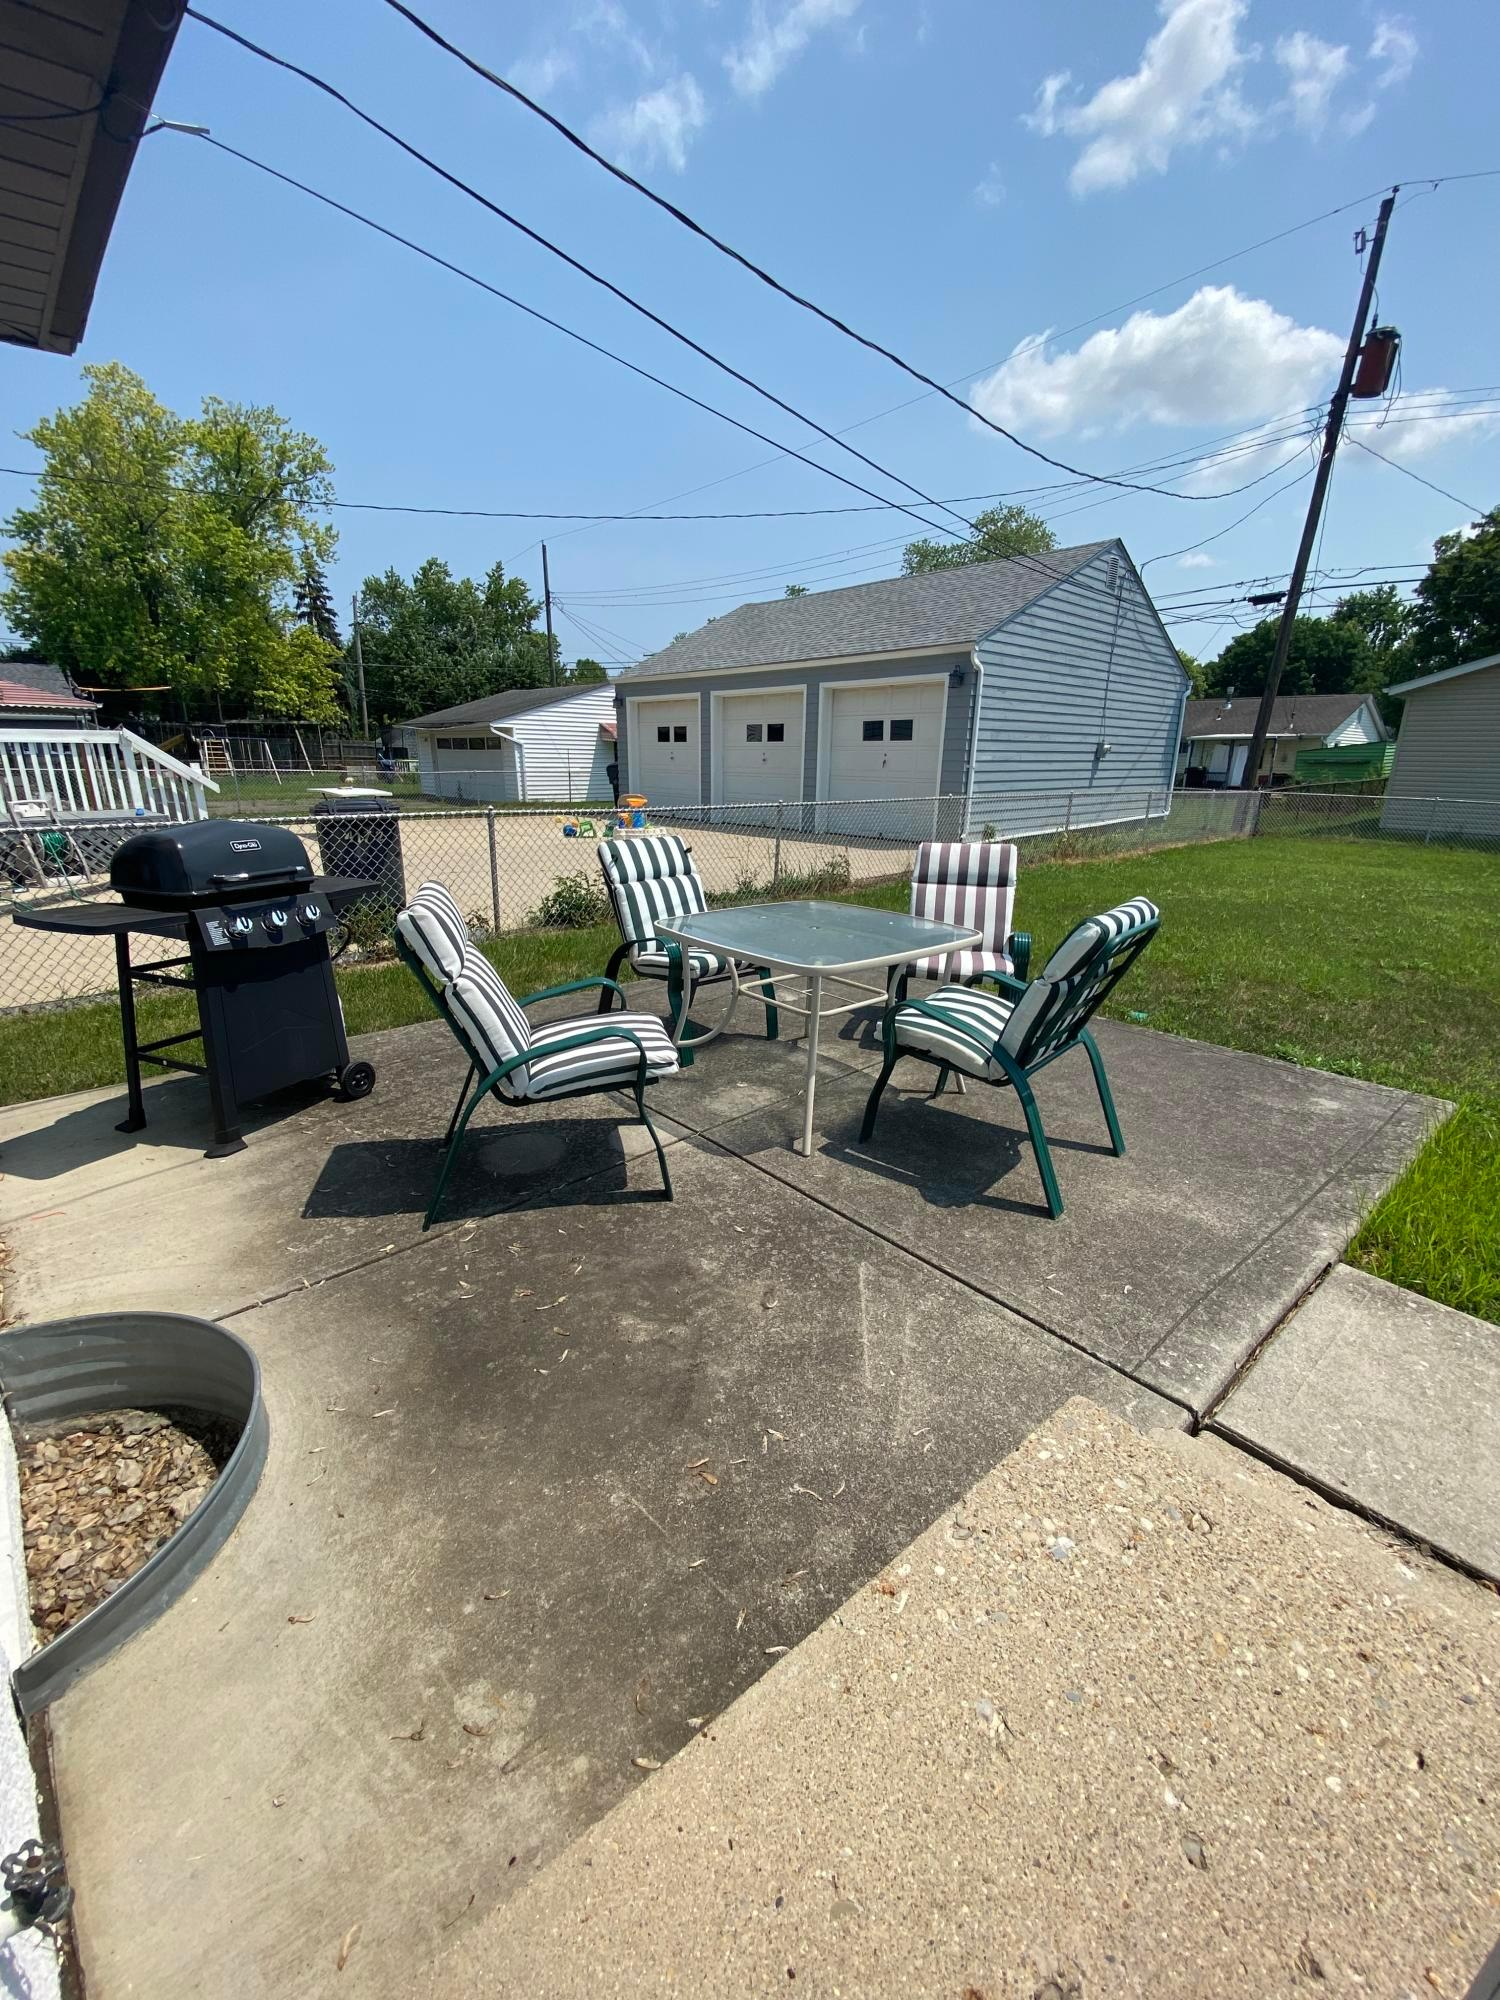 Back patio for cookouts